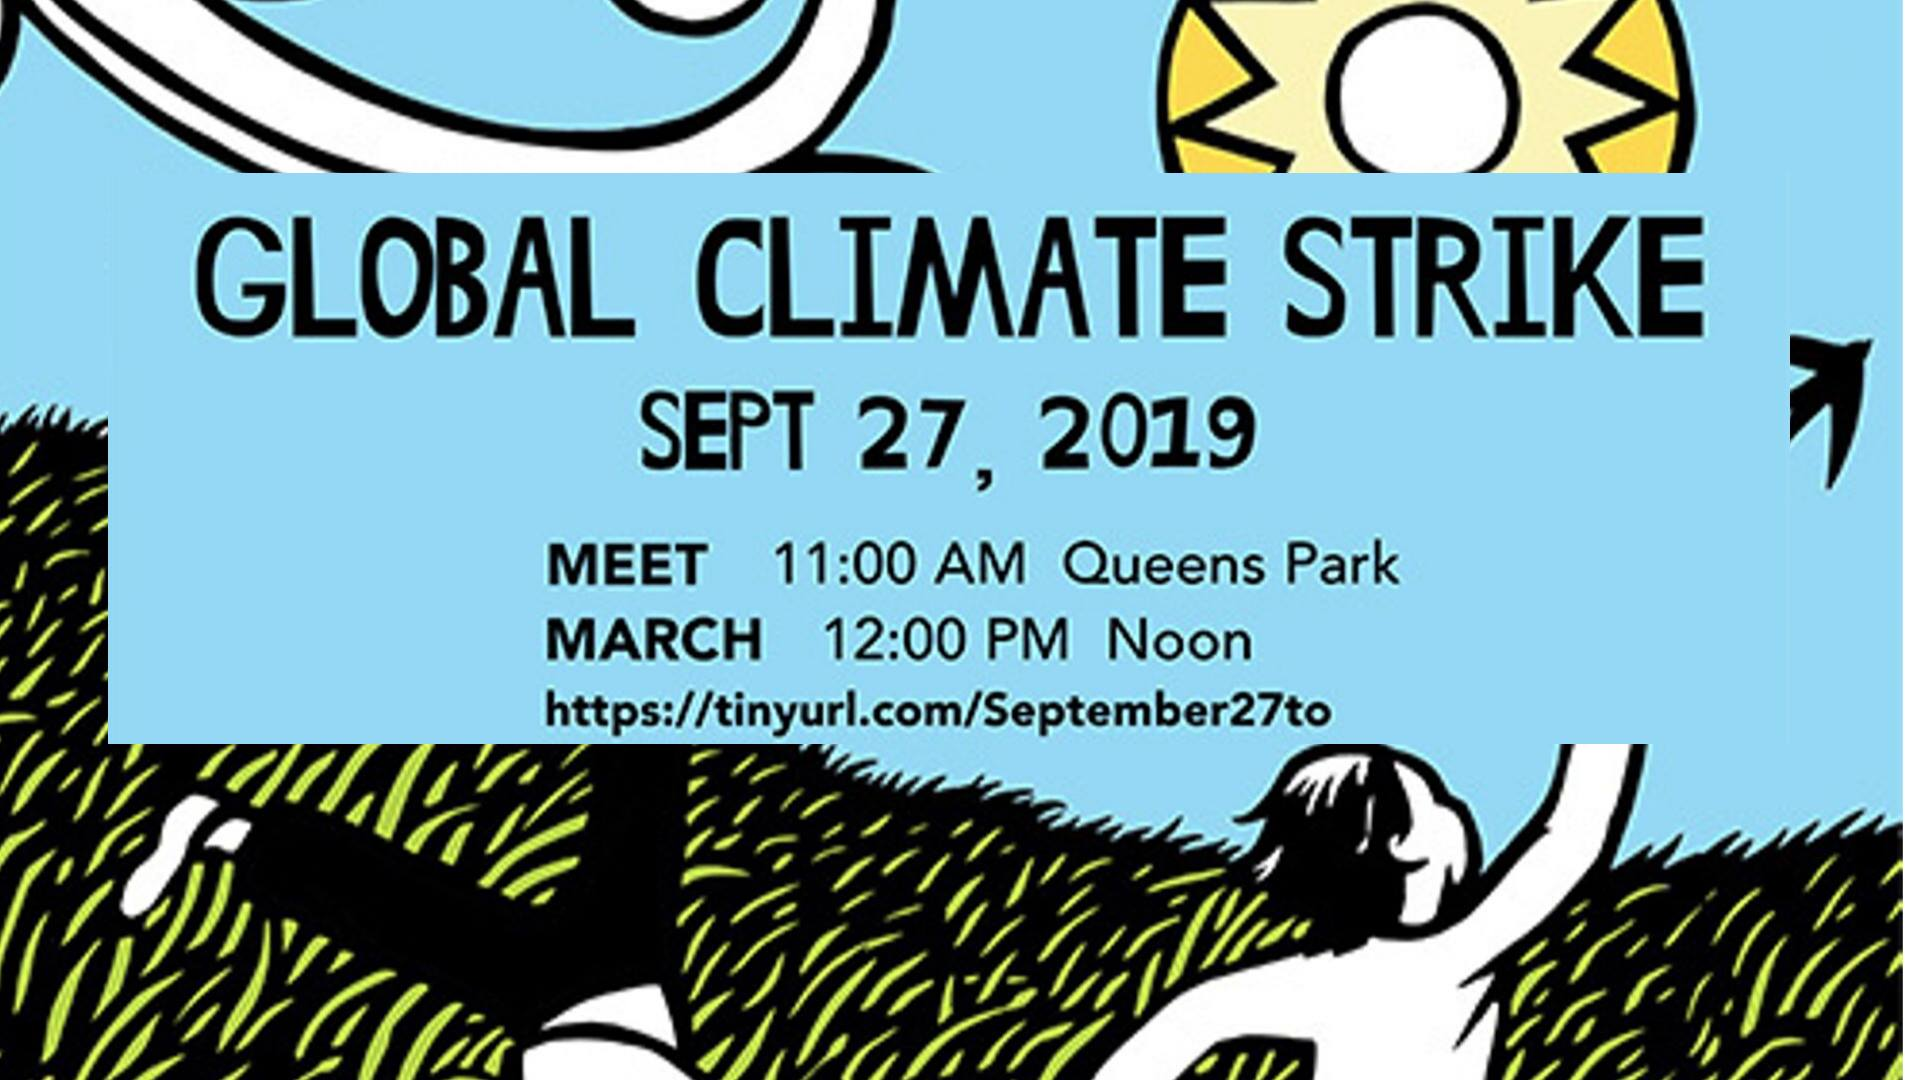 Global Climate Strike 2019 Poster